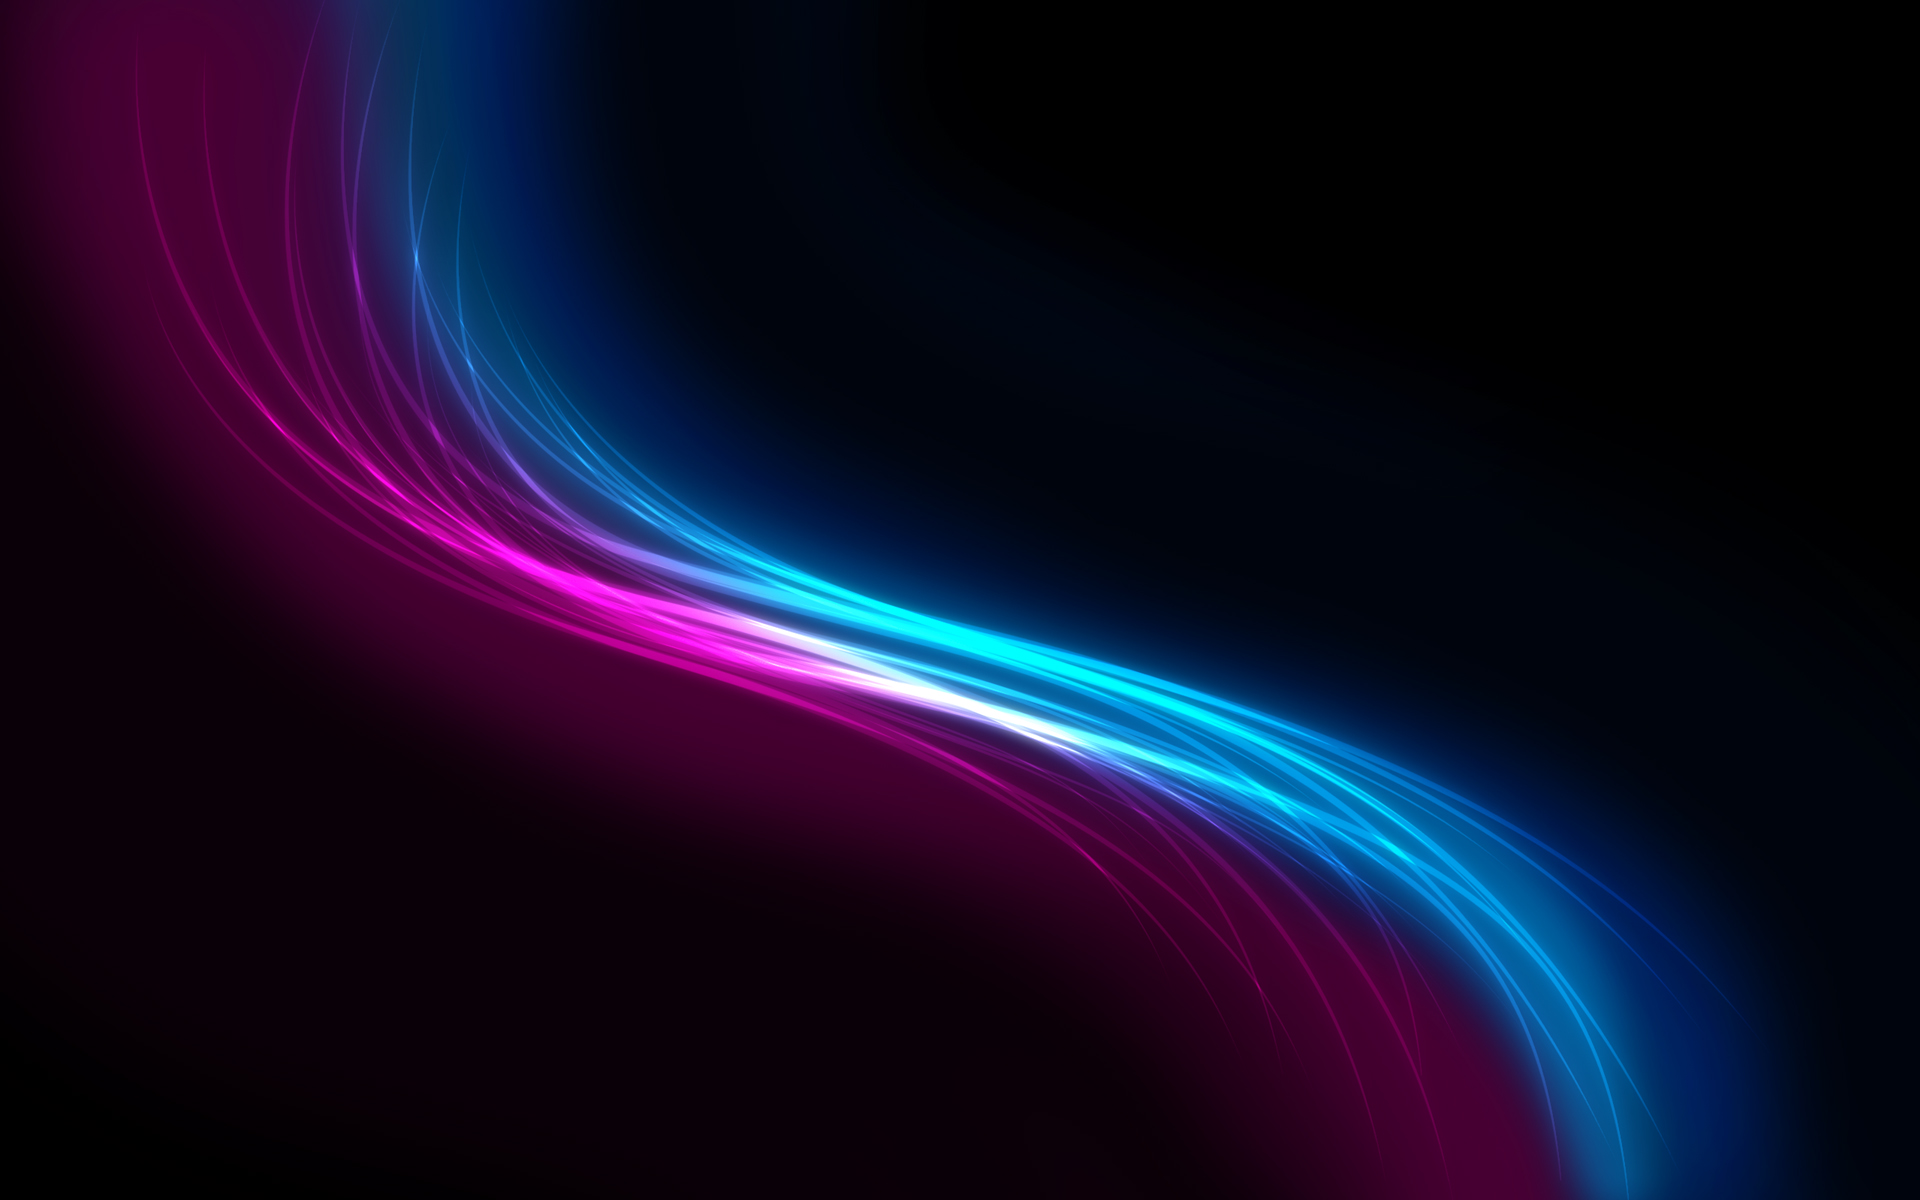 13 Quality Abstract Backgrounds Patterns For WebDesign 1920x1200